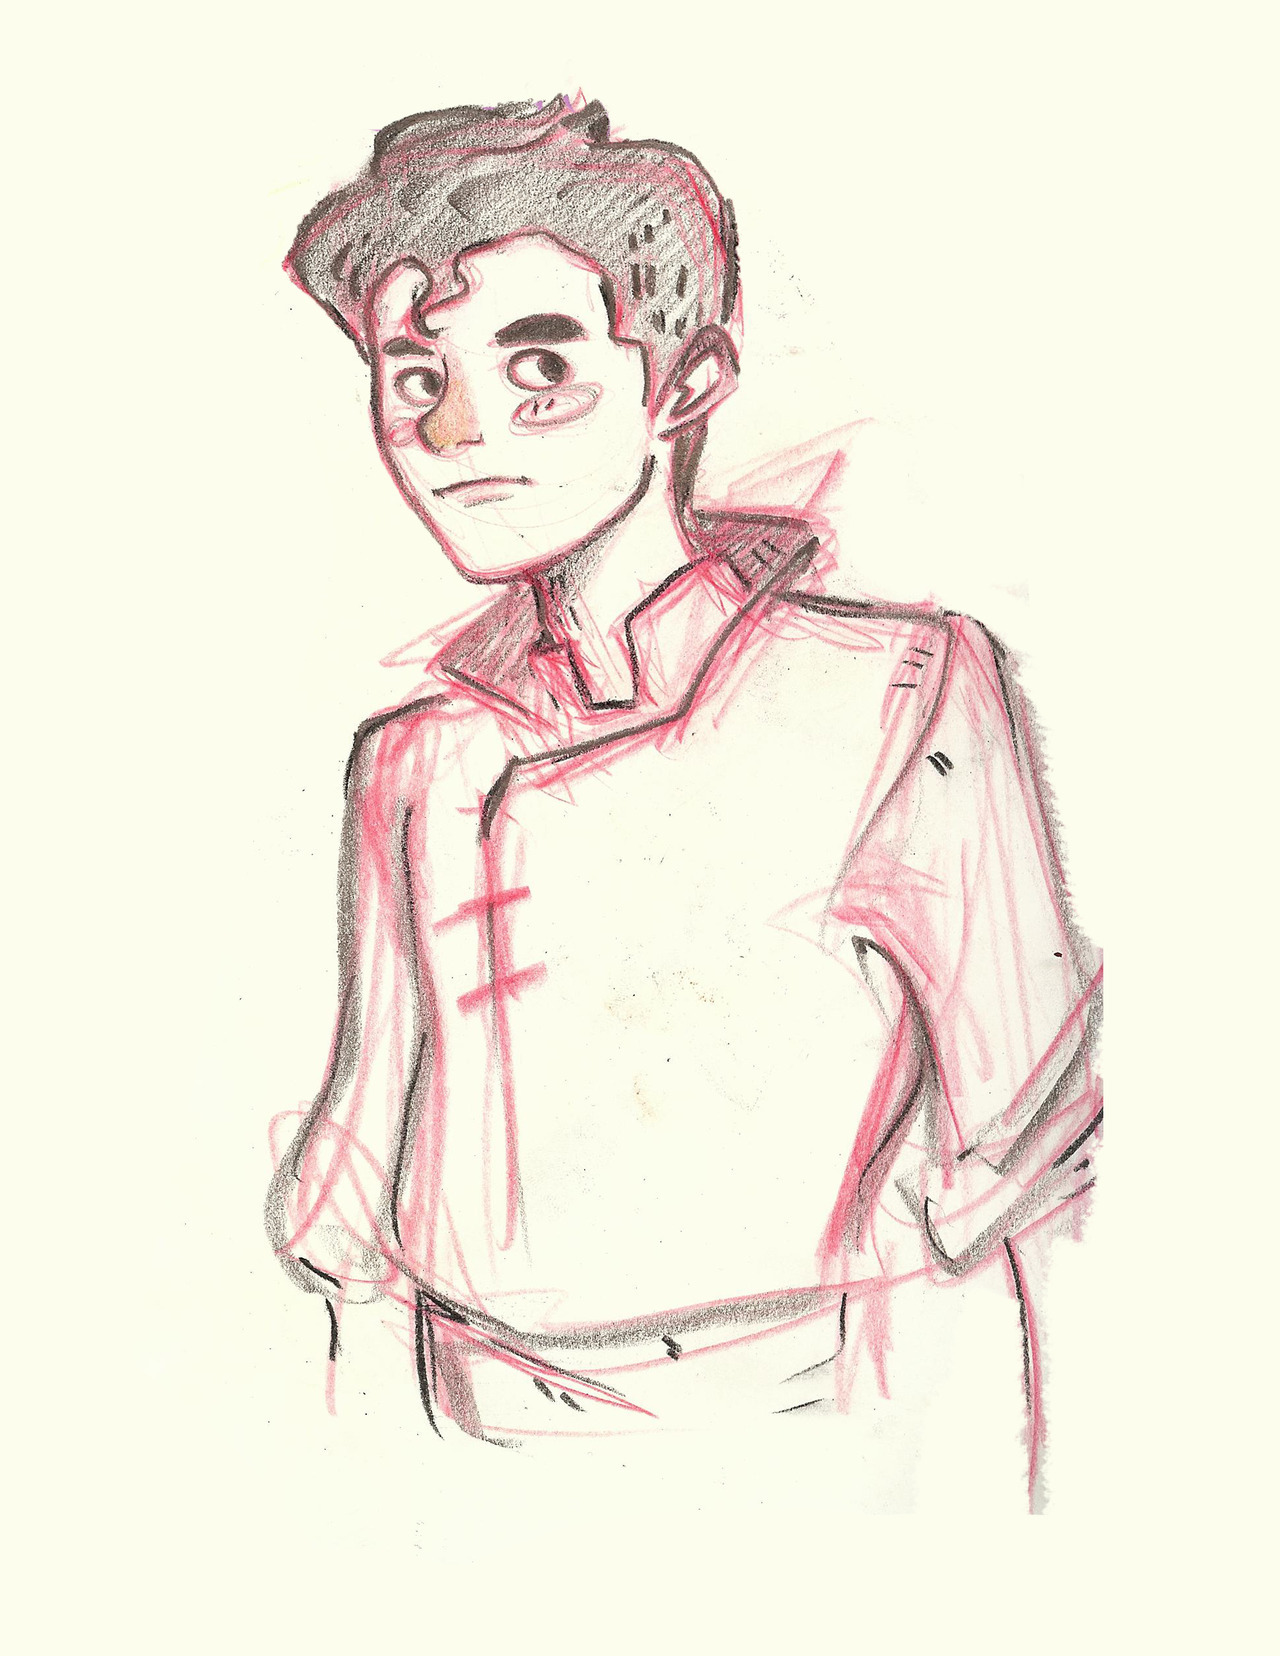 Oh you know, just some Bolin from Legend of Korra. He's so cuuute ^^